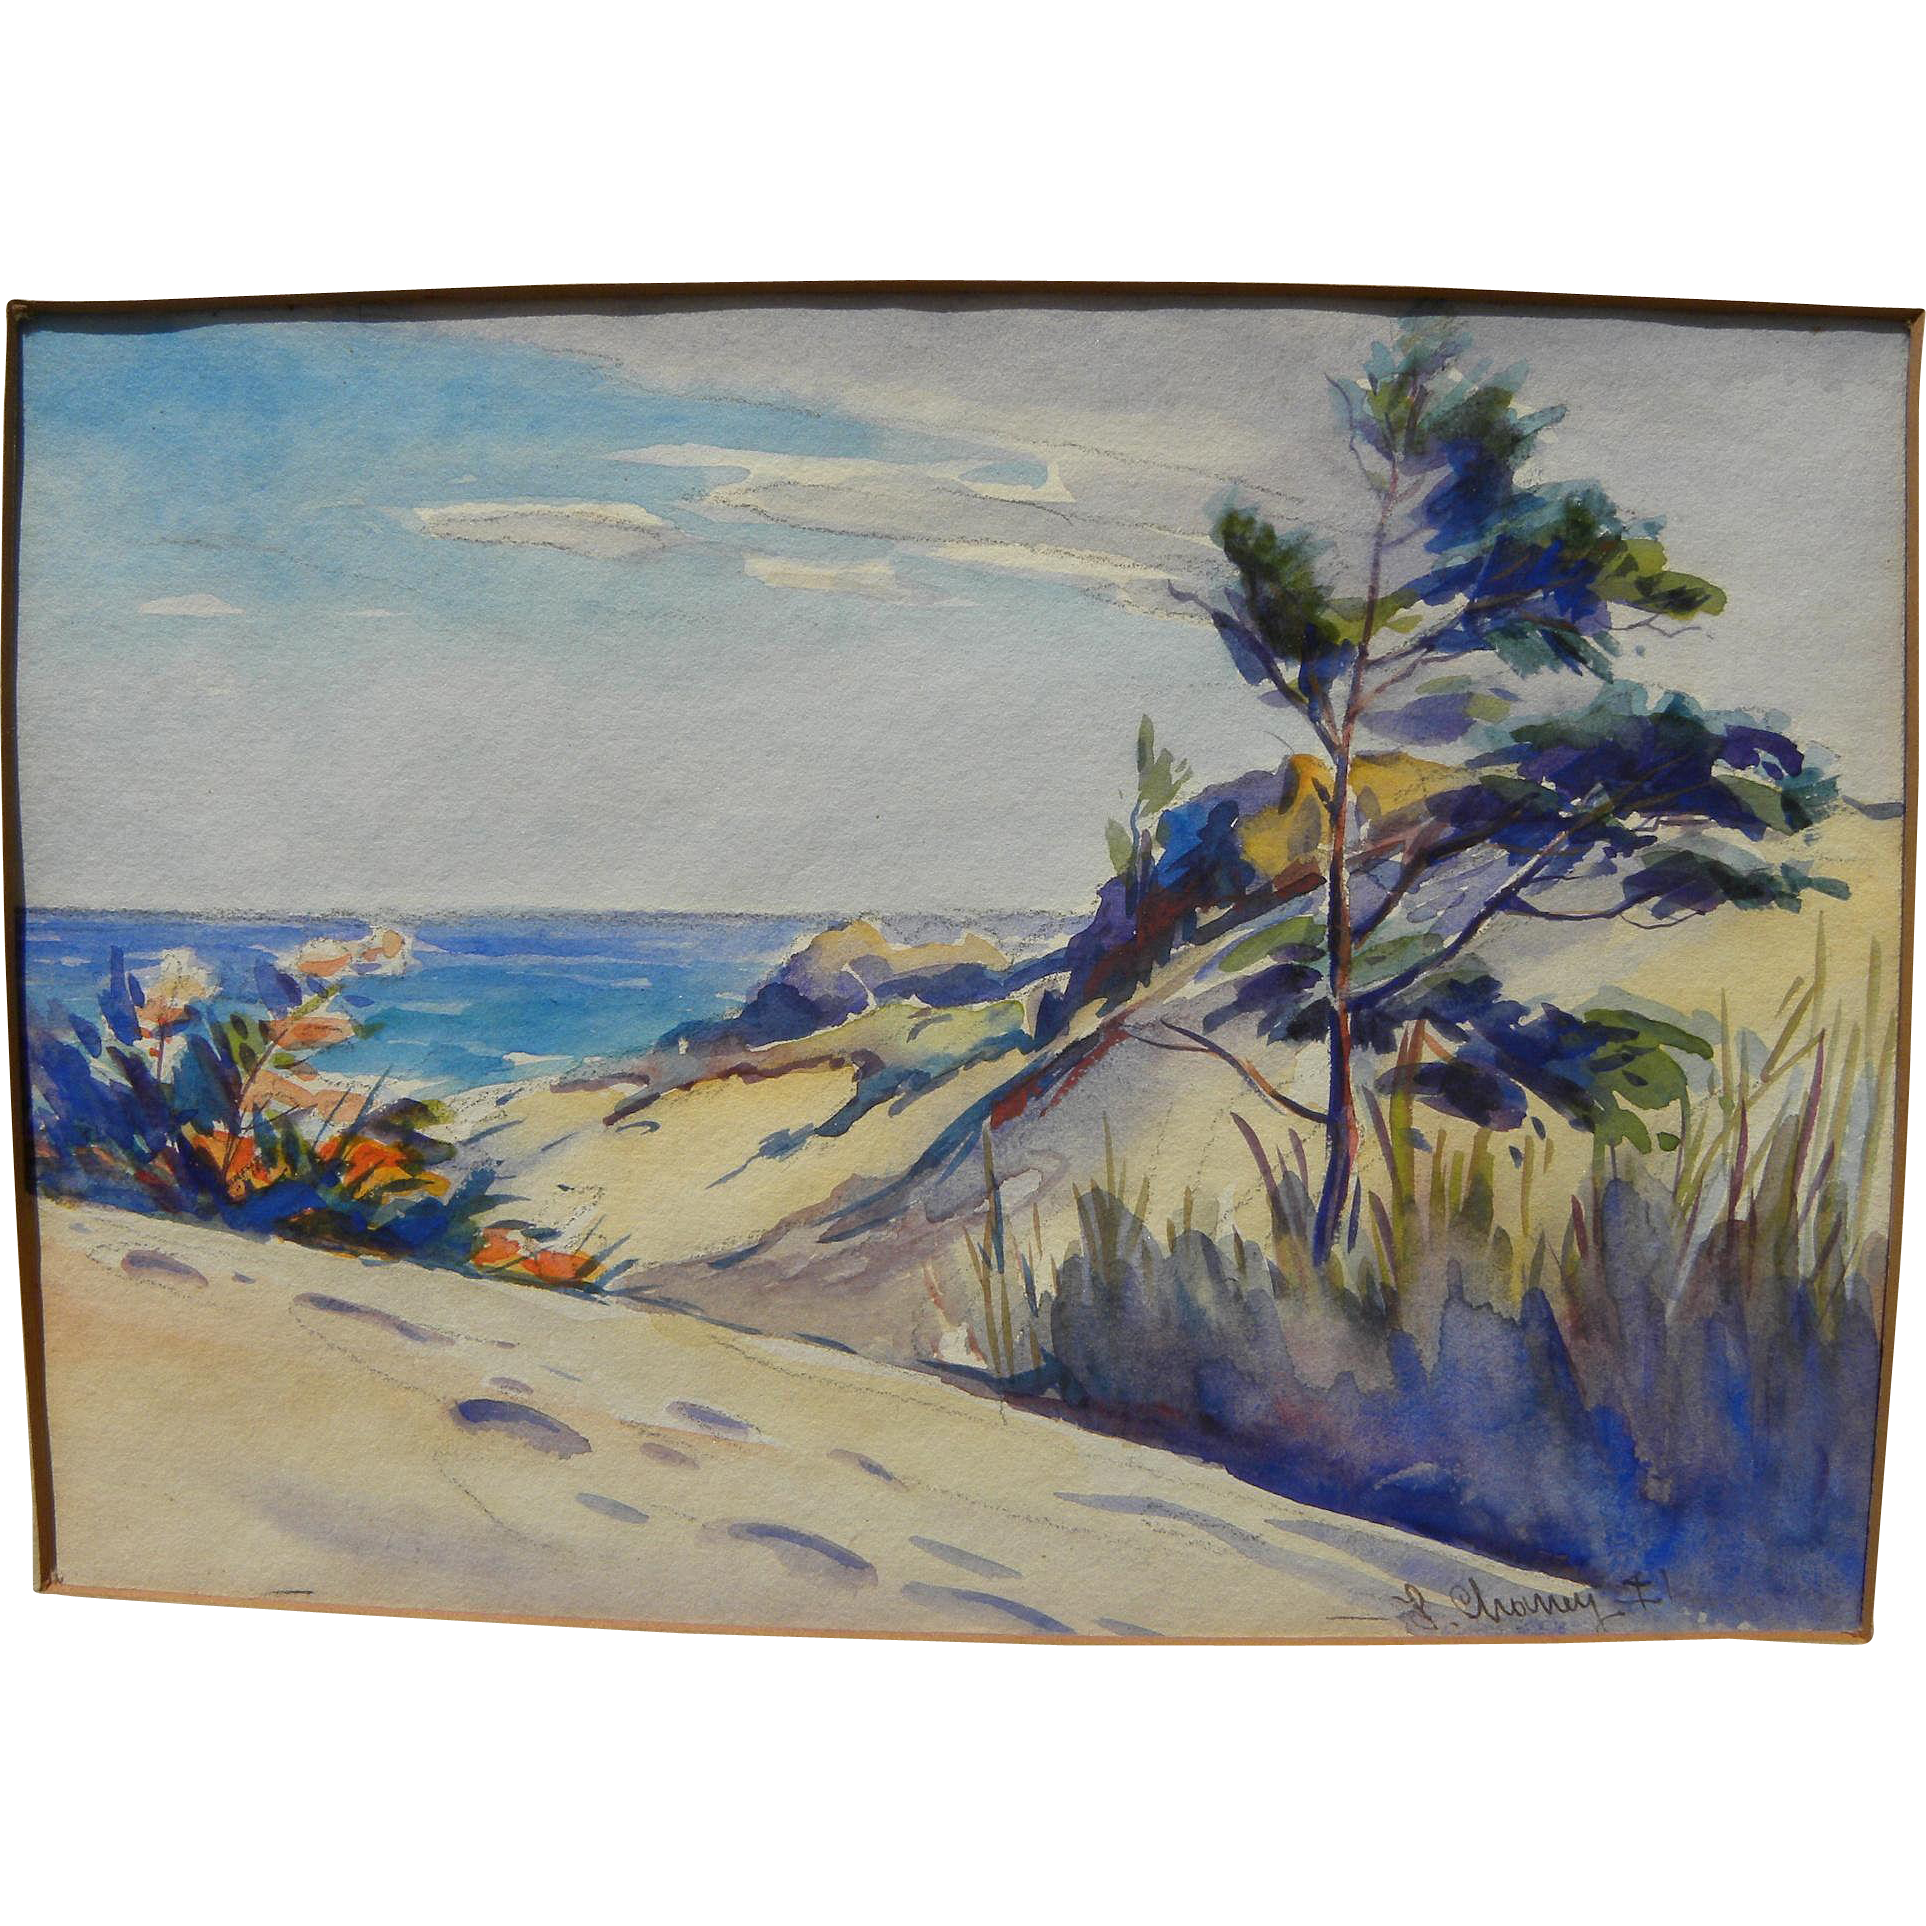 LESTER JOSEPH CHANEY (1907-1998) watercolor painting of Indiana coastal dunes on Lake Michigan